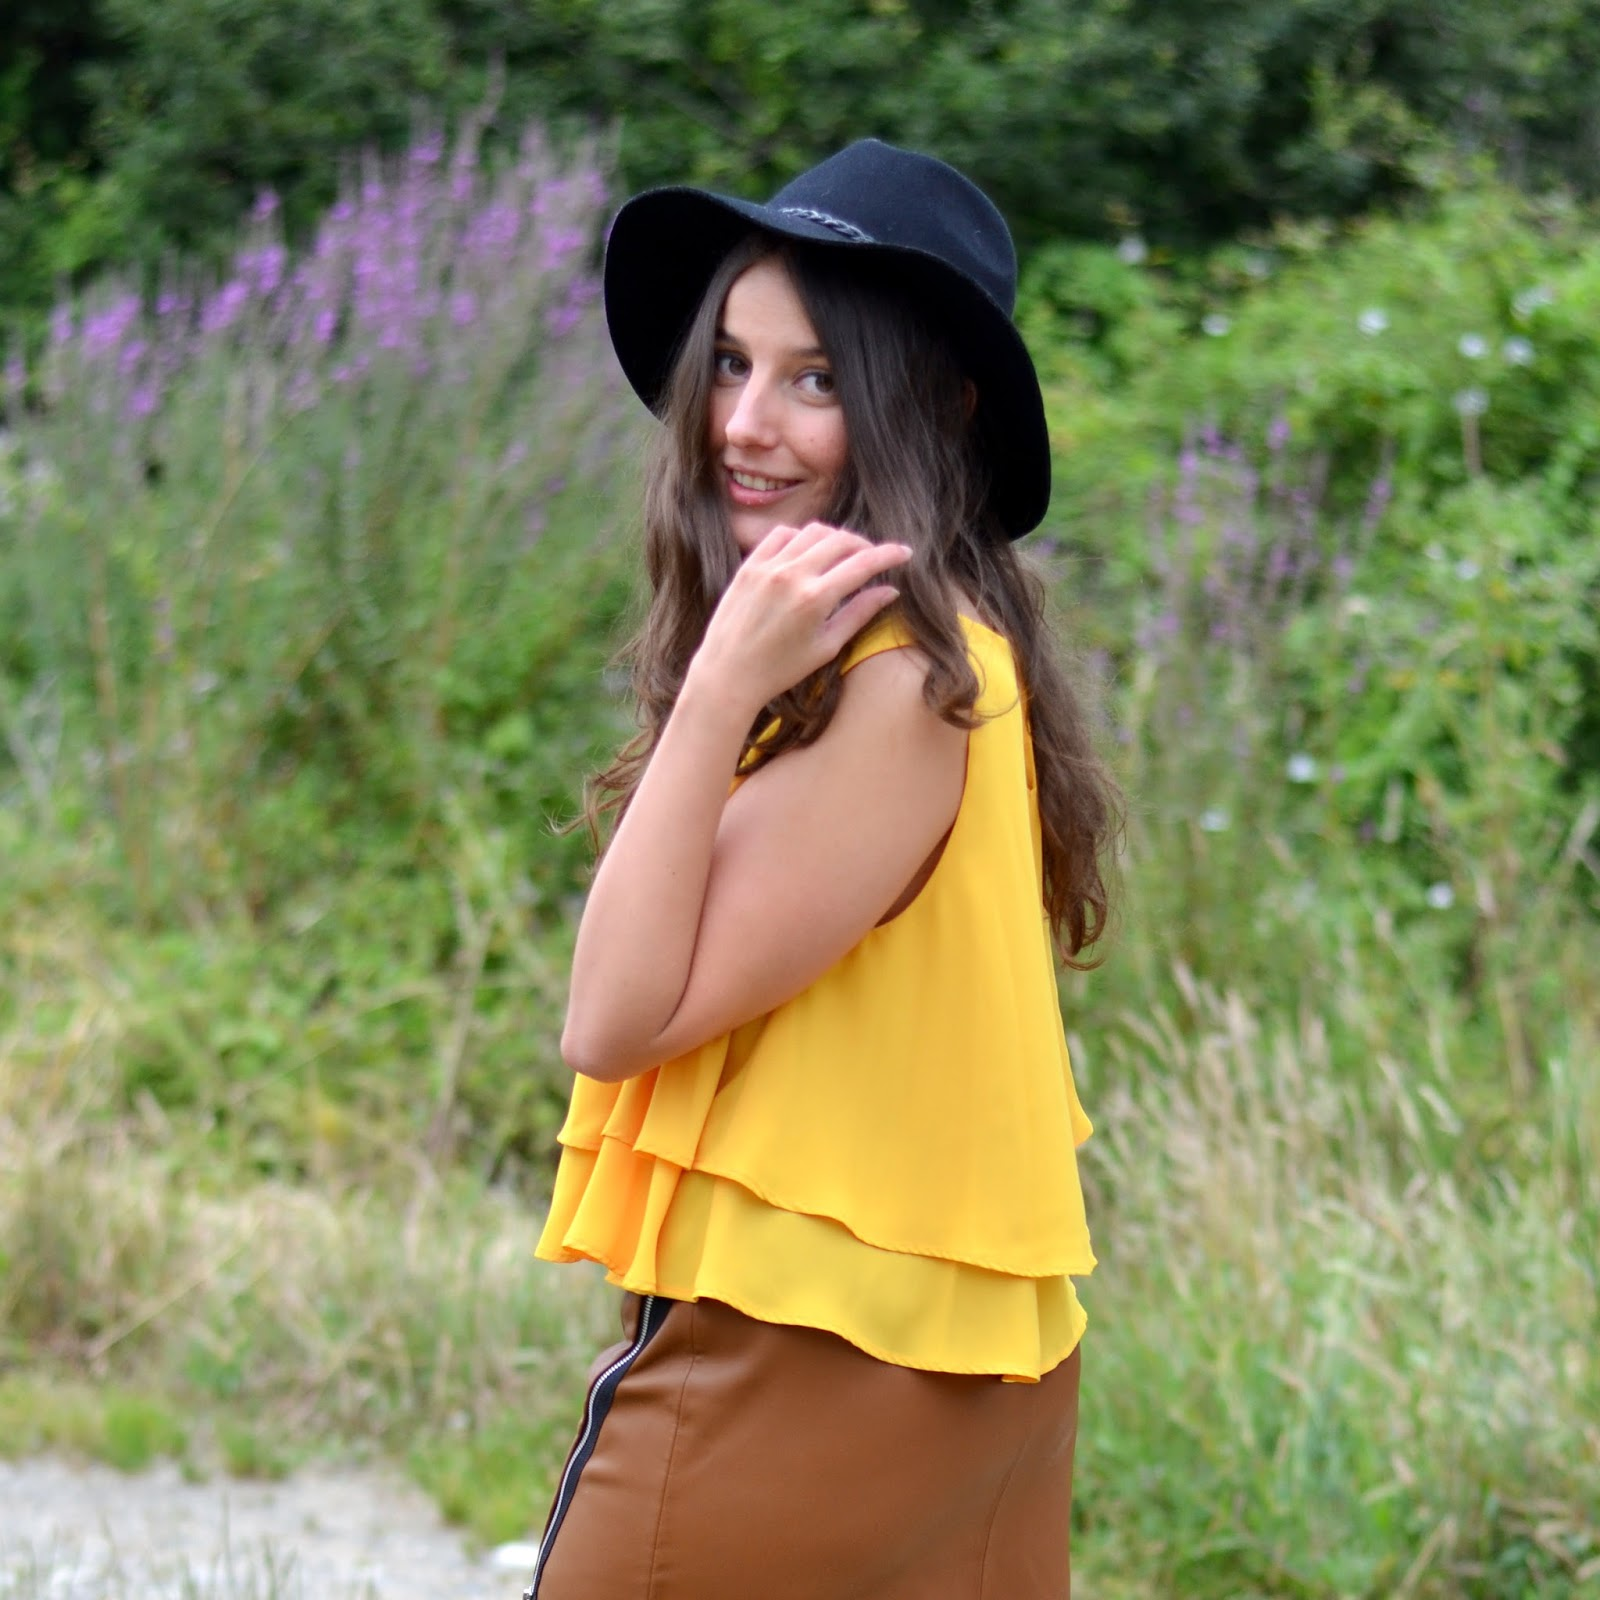 leatherette brown skirt, mustard top, black hat